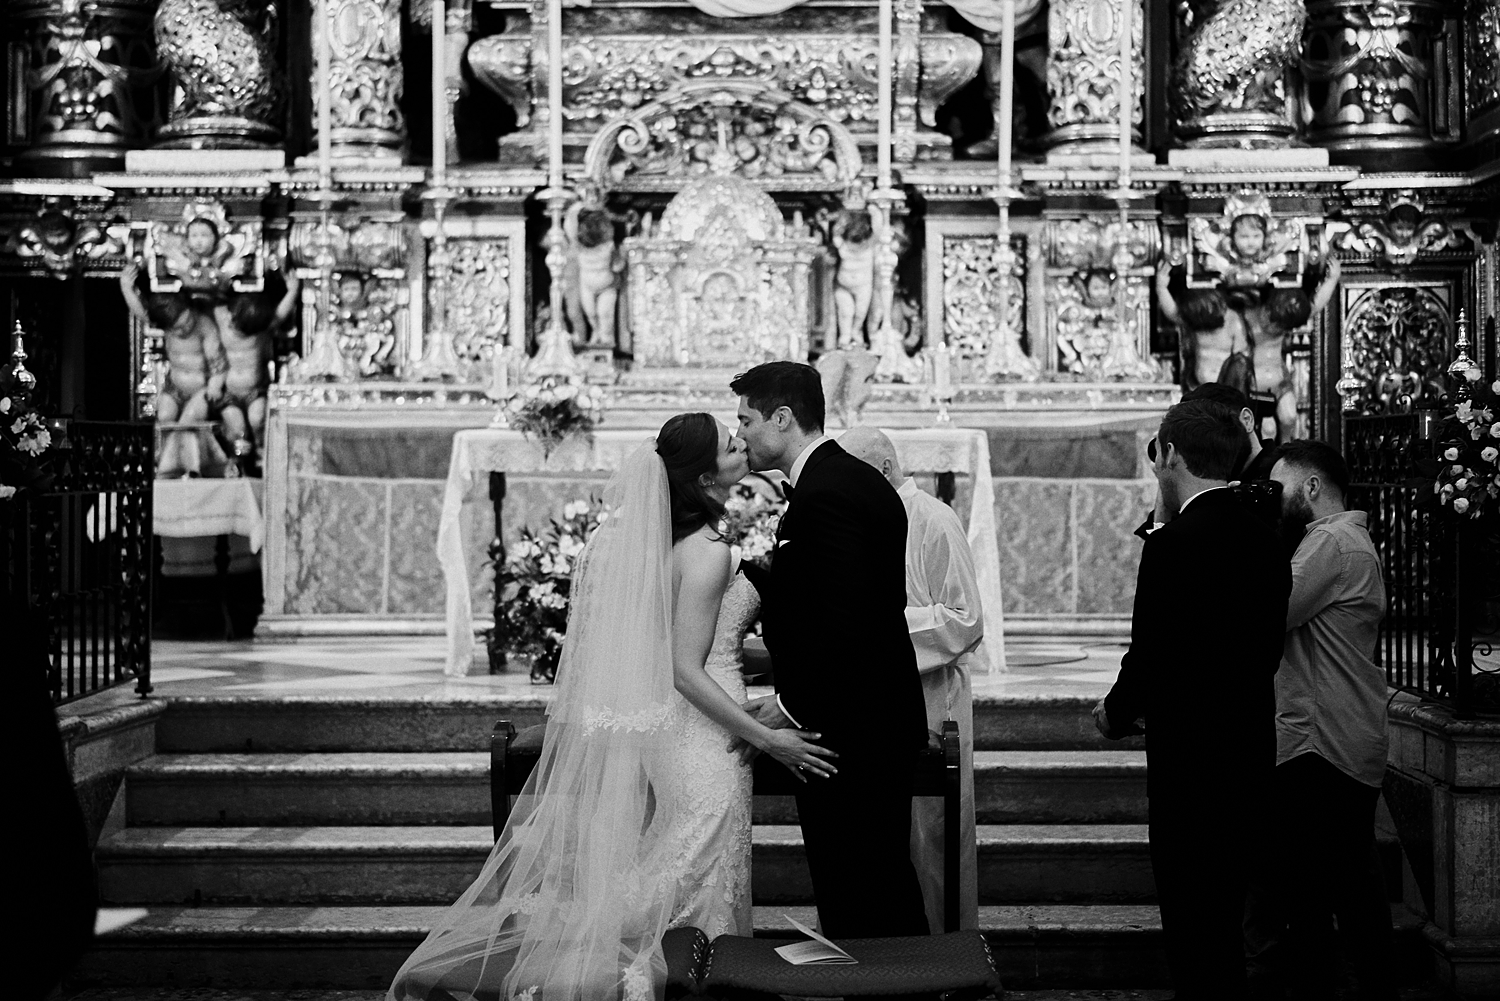 muse+and+mirror-wedding+photographer+sevilla-spain+wedding_0108.jpg